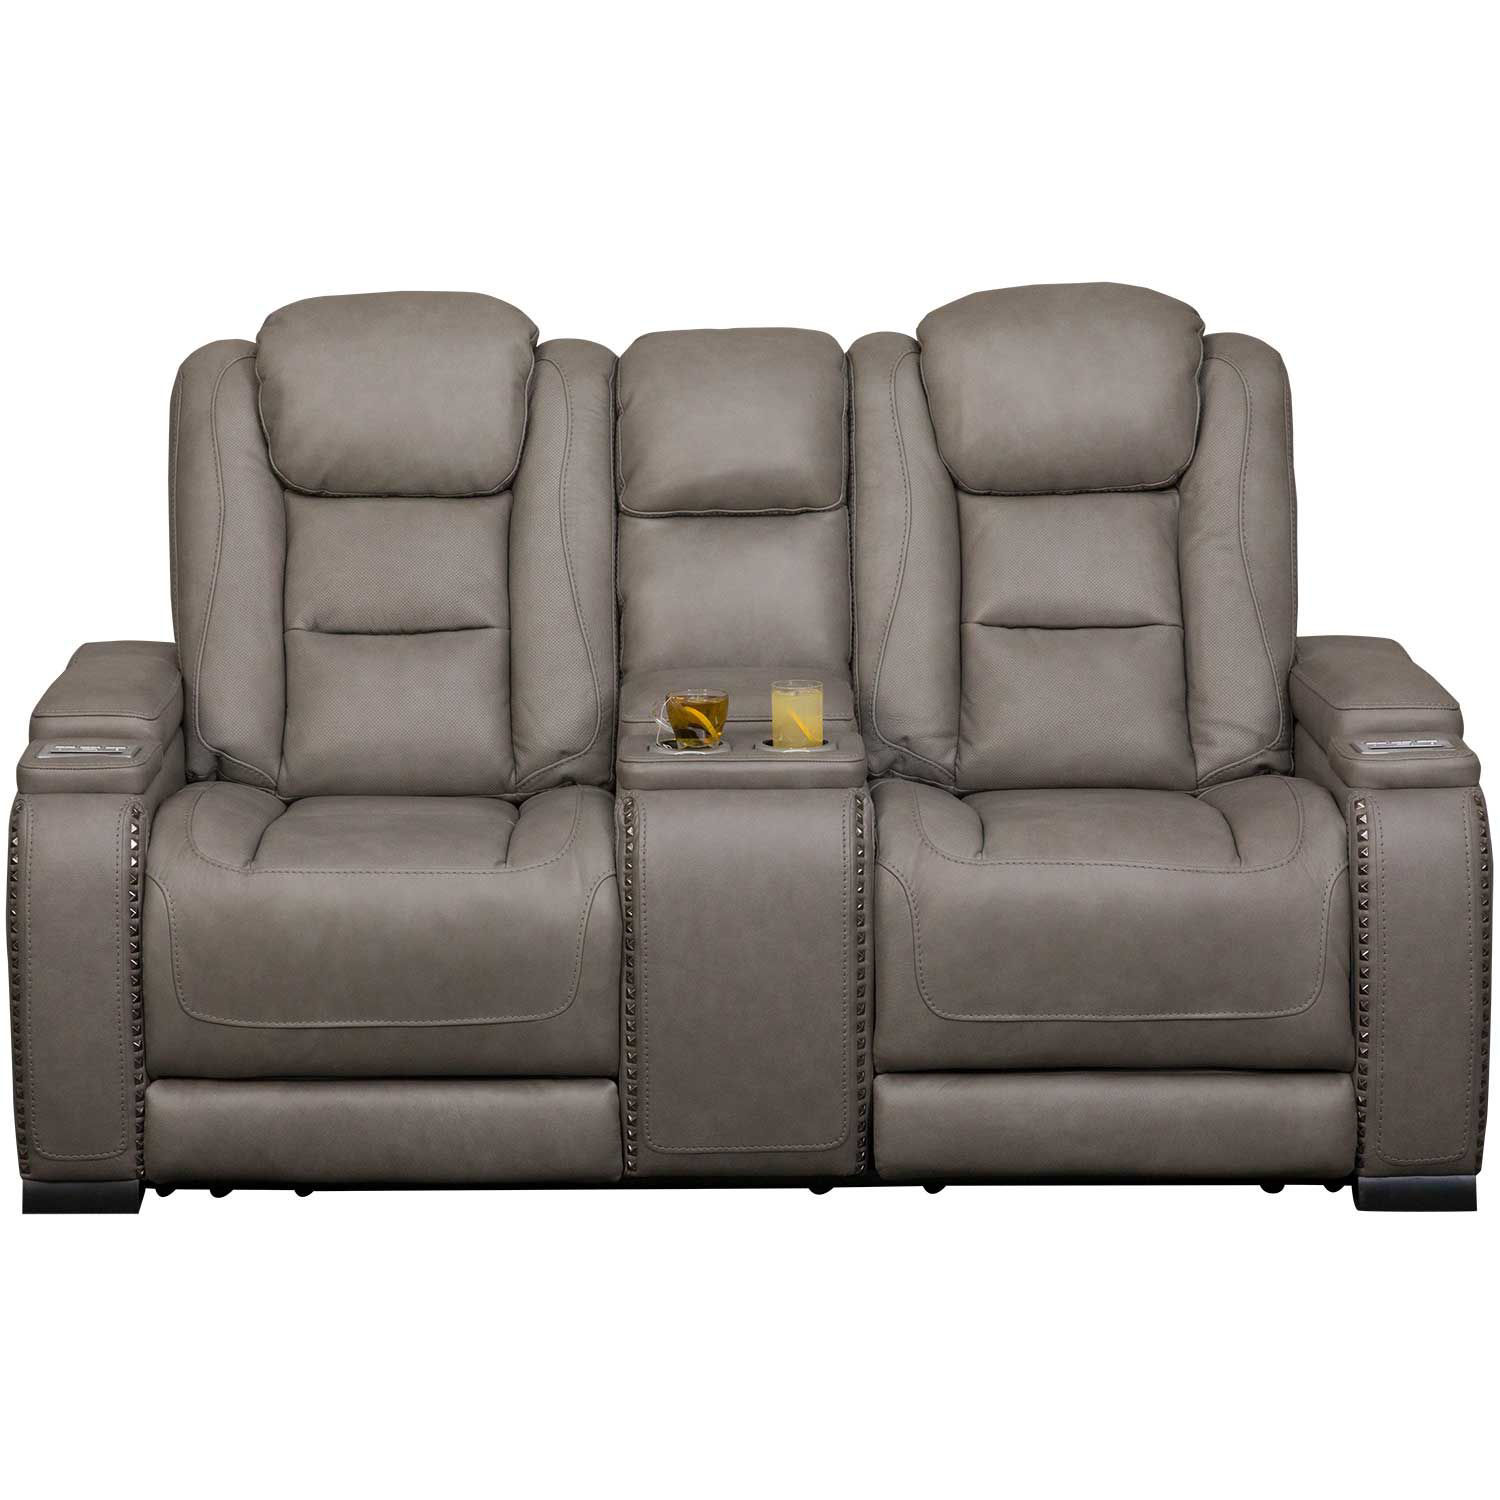 Picture of The Man-Den Power Reclining Console Loveseat